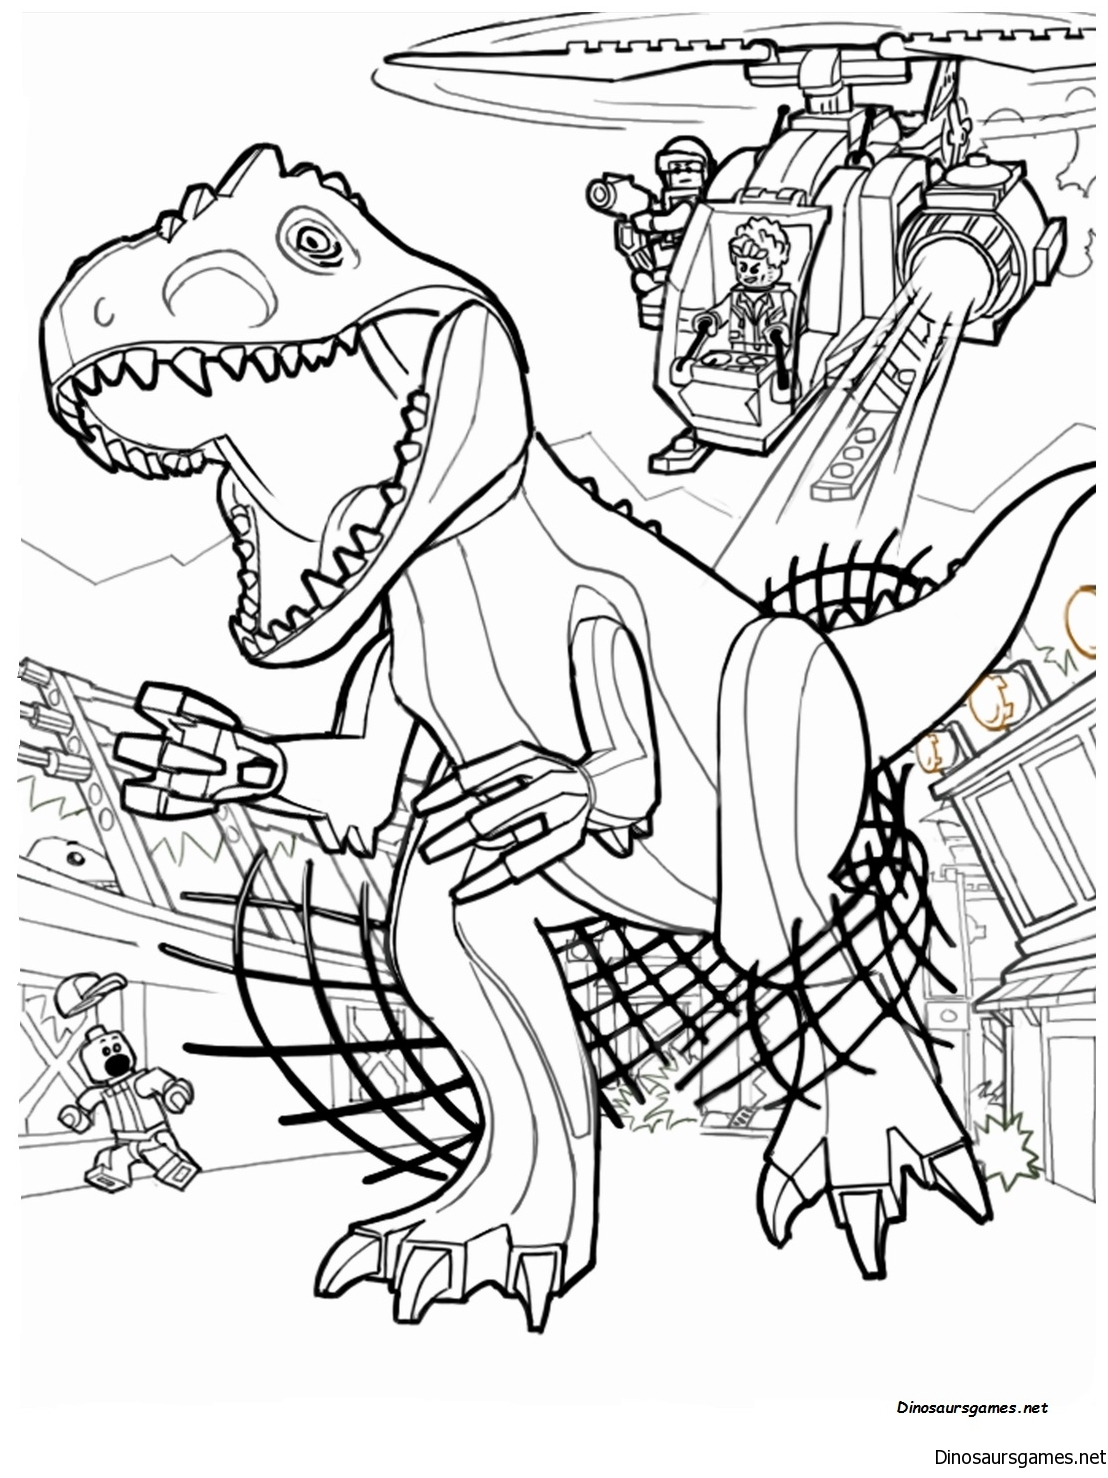 Jurassic Park Raptor Coloring Page